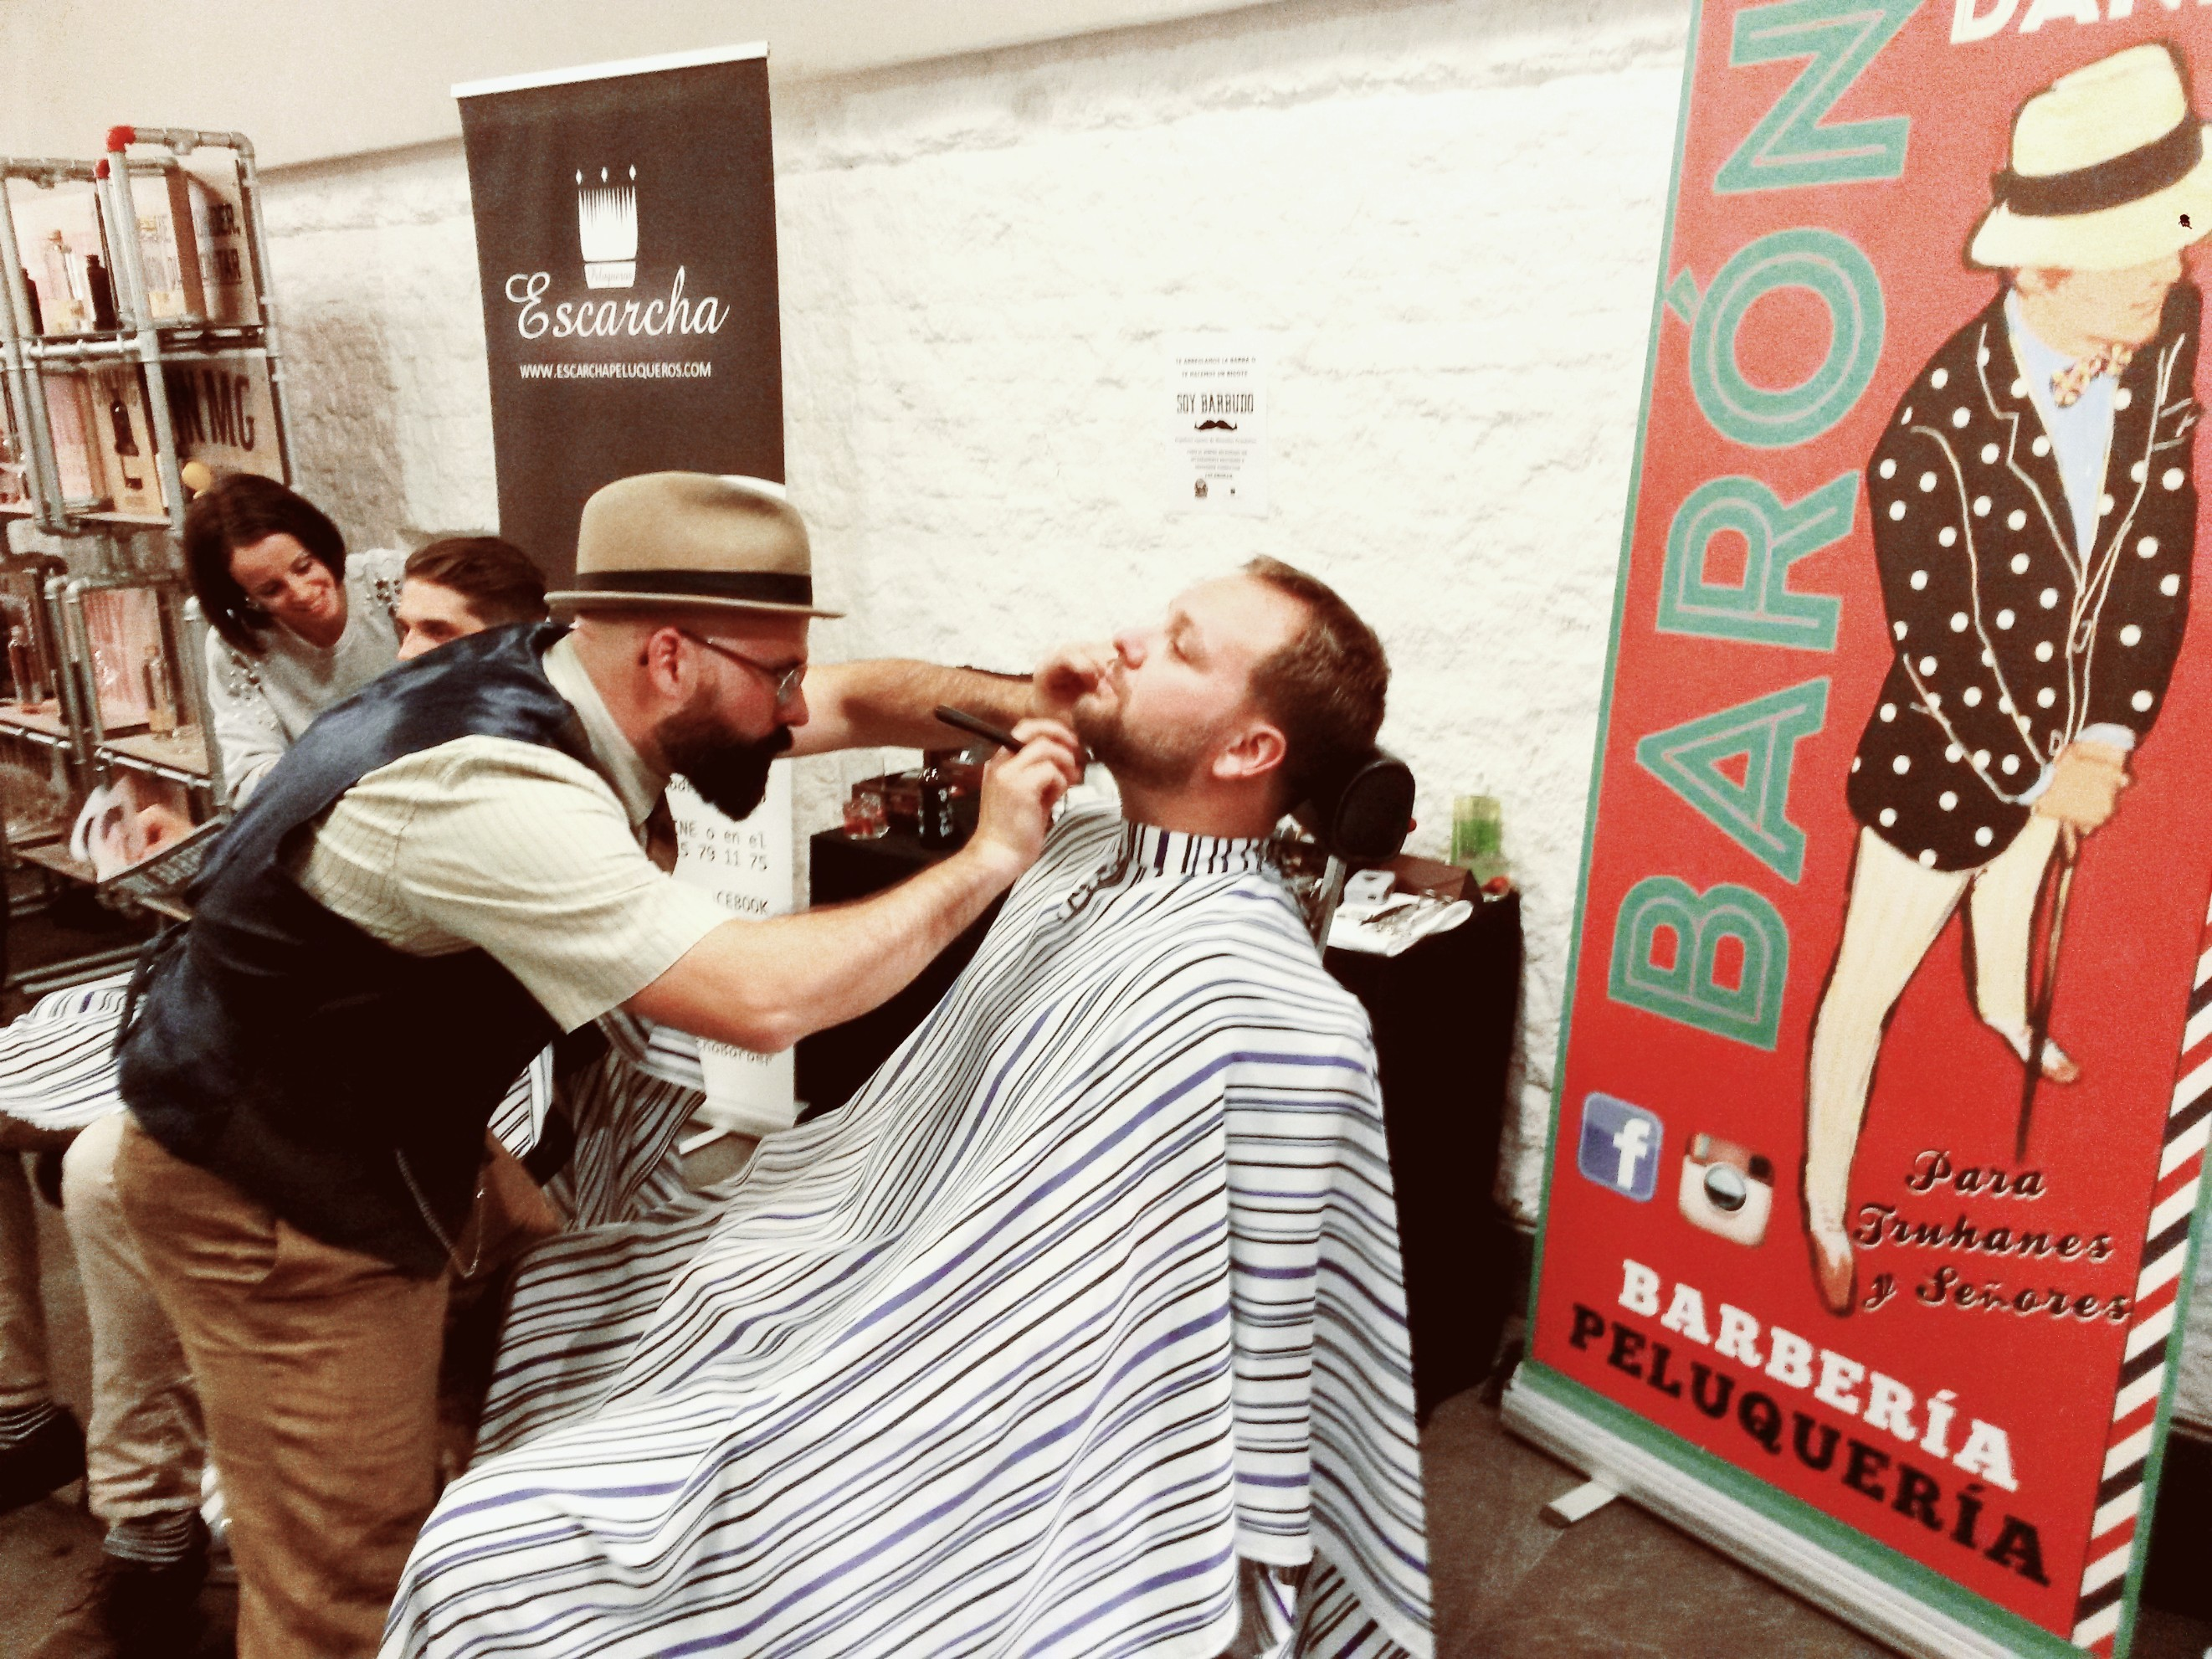 barberías barón badajoz escarcha bohemian natural beards